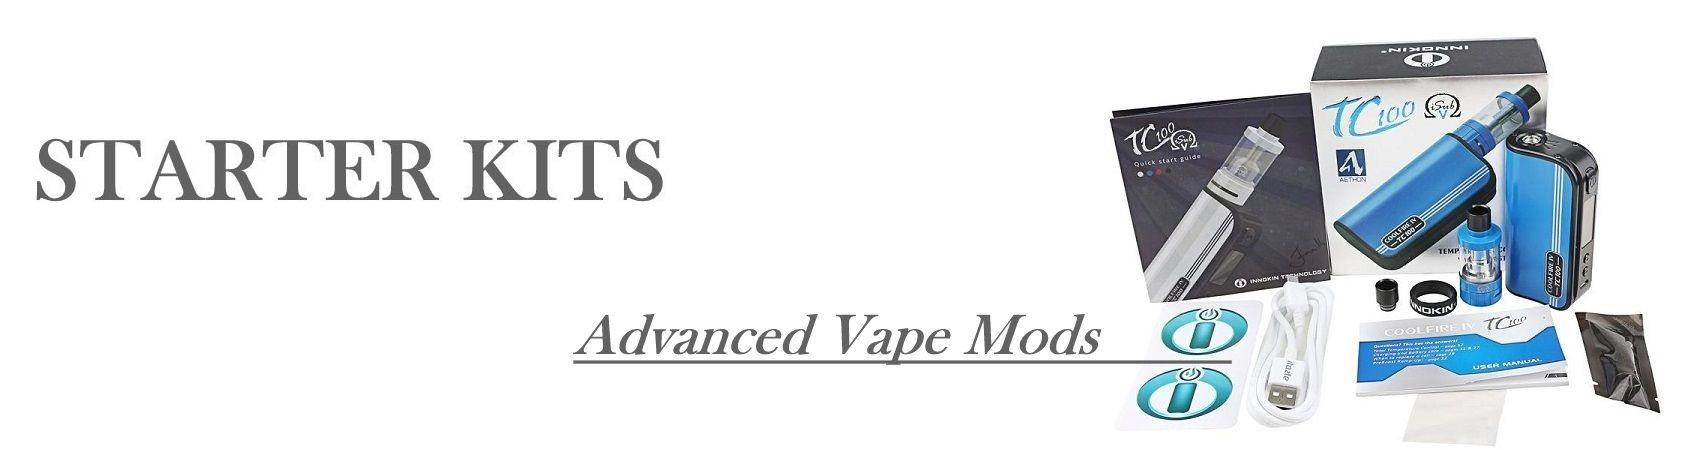 Advanced Ecig Starter Kit Vape Mods